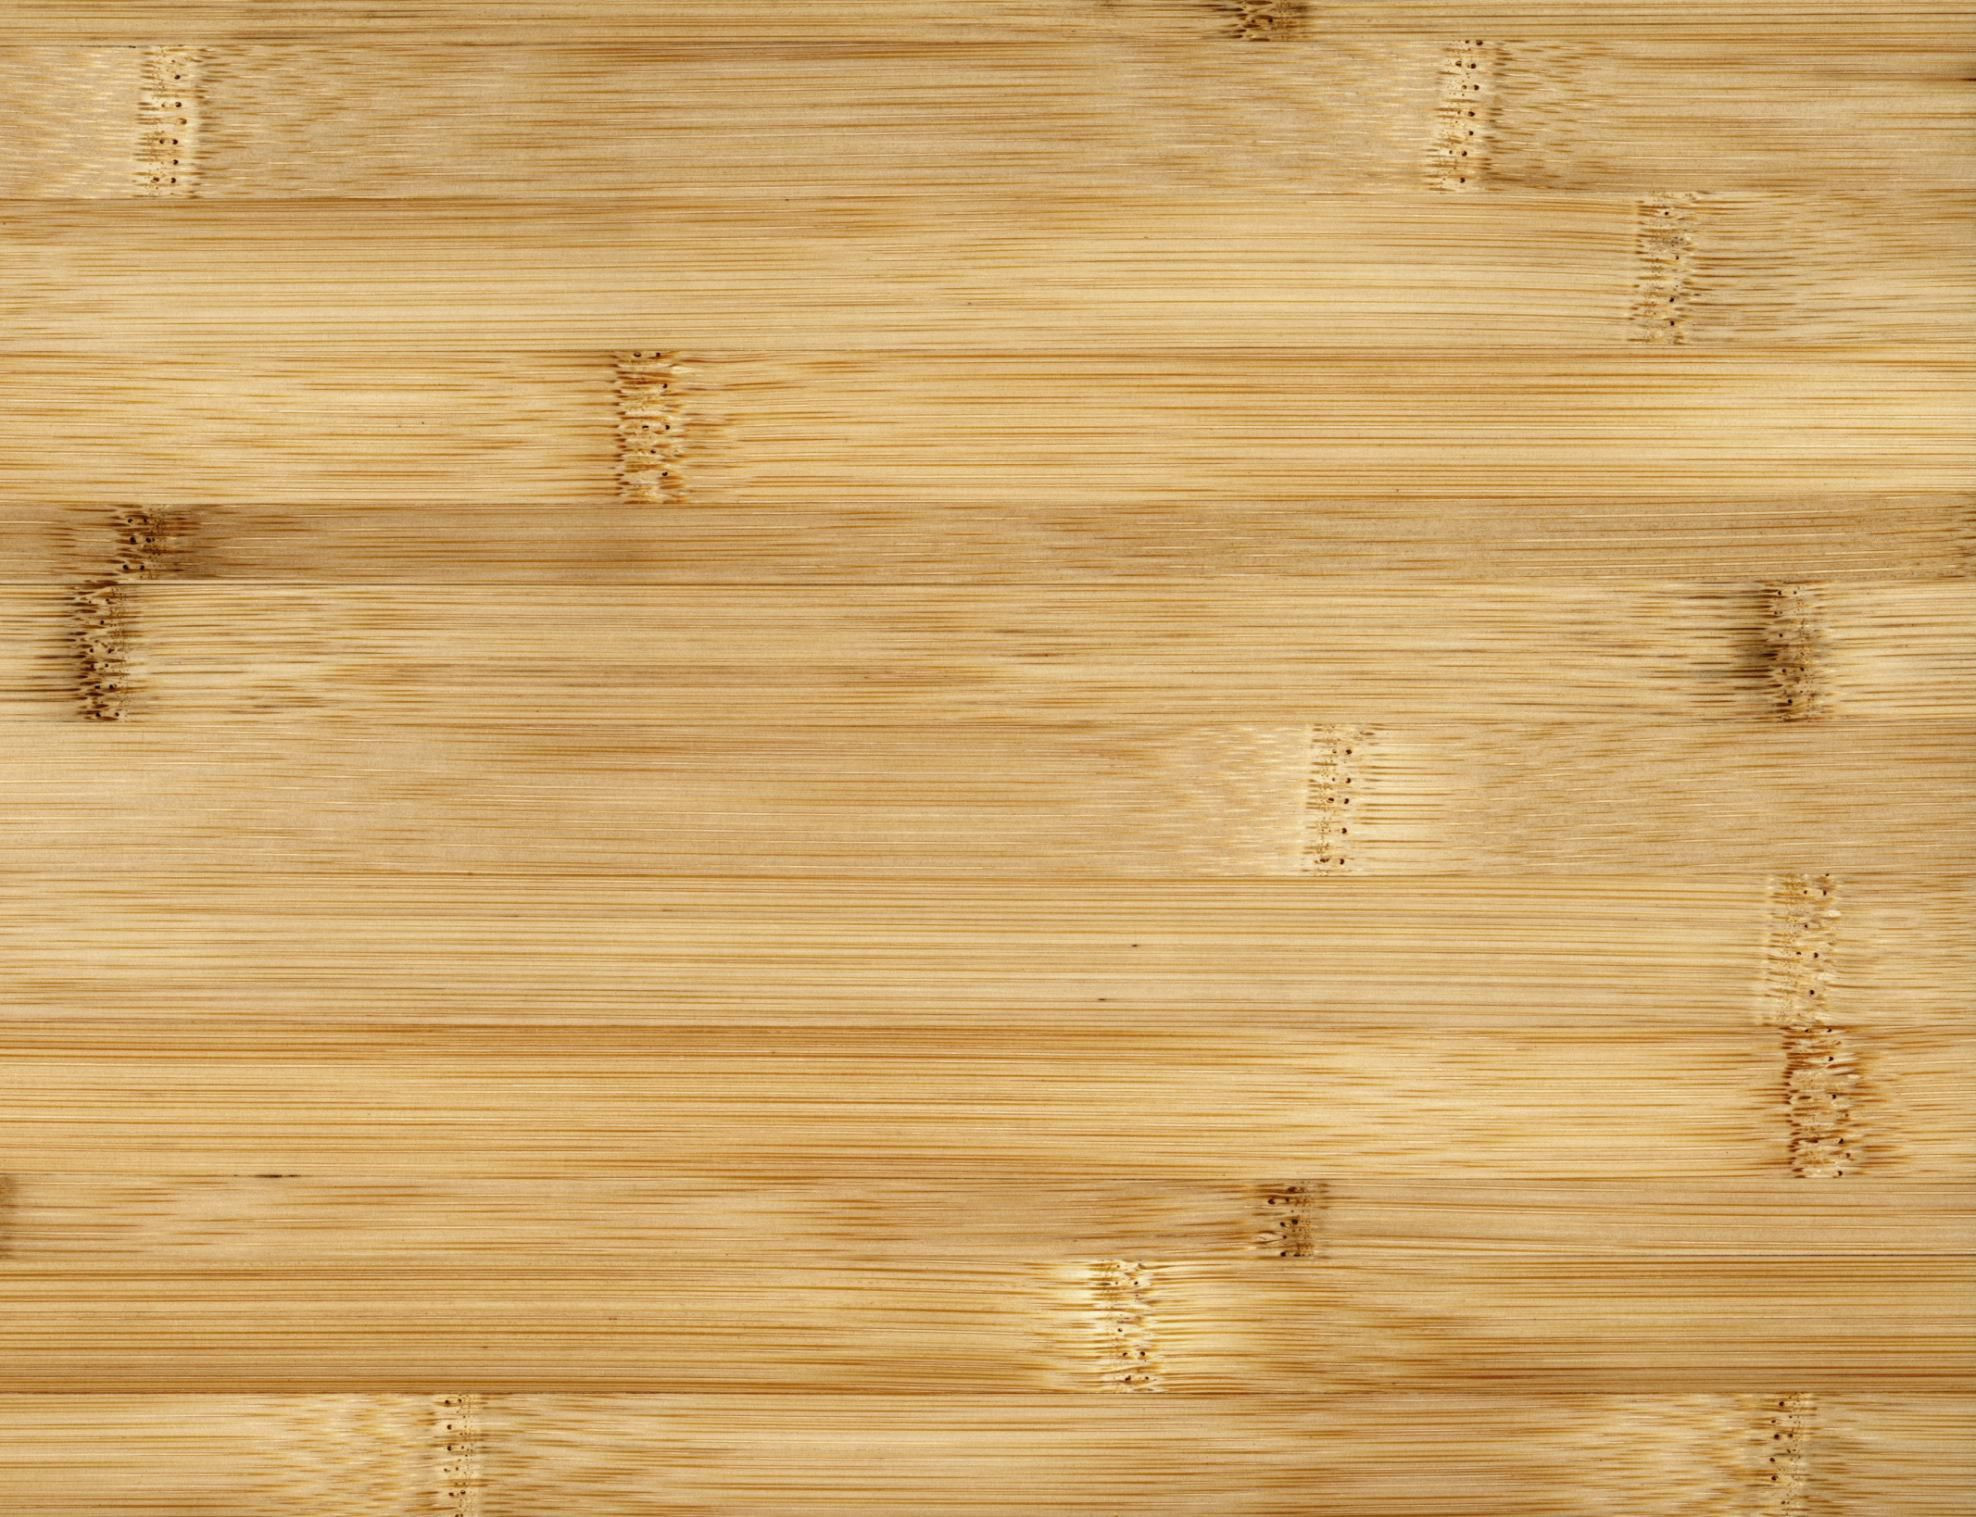 strand woven bamboo flooring vs hardwood of how to clean bamboo flooring regarding 200266305 001 56a2fd815f9b58b7d0d000cd